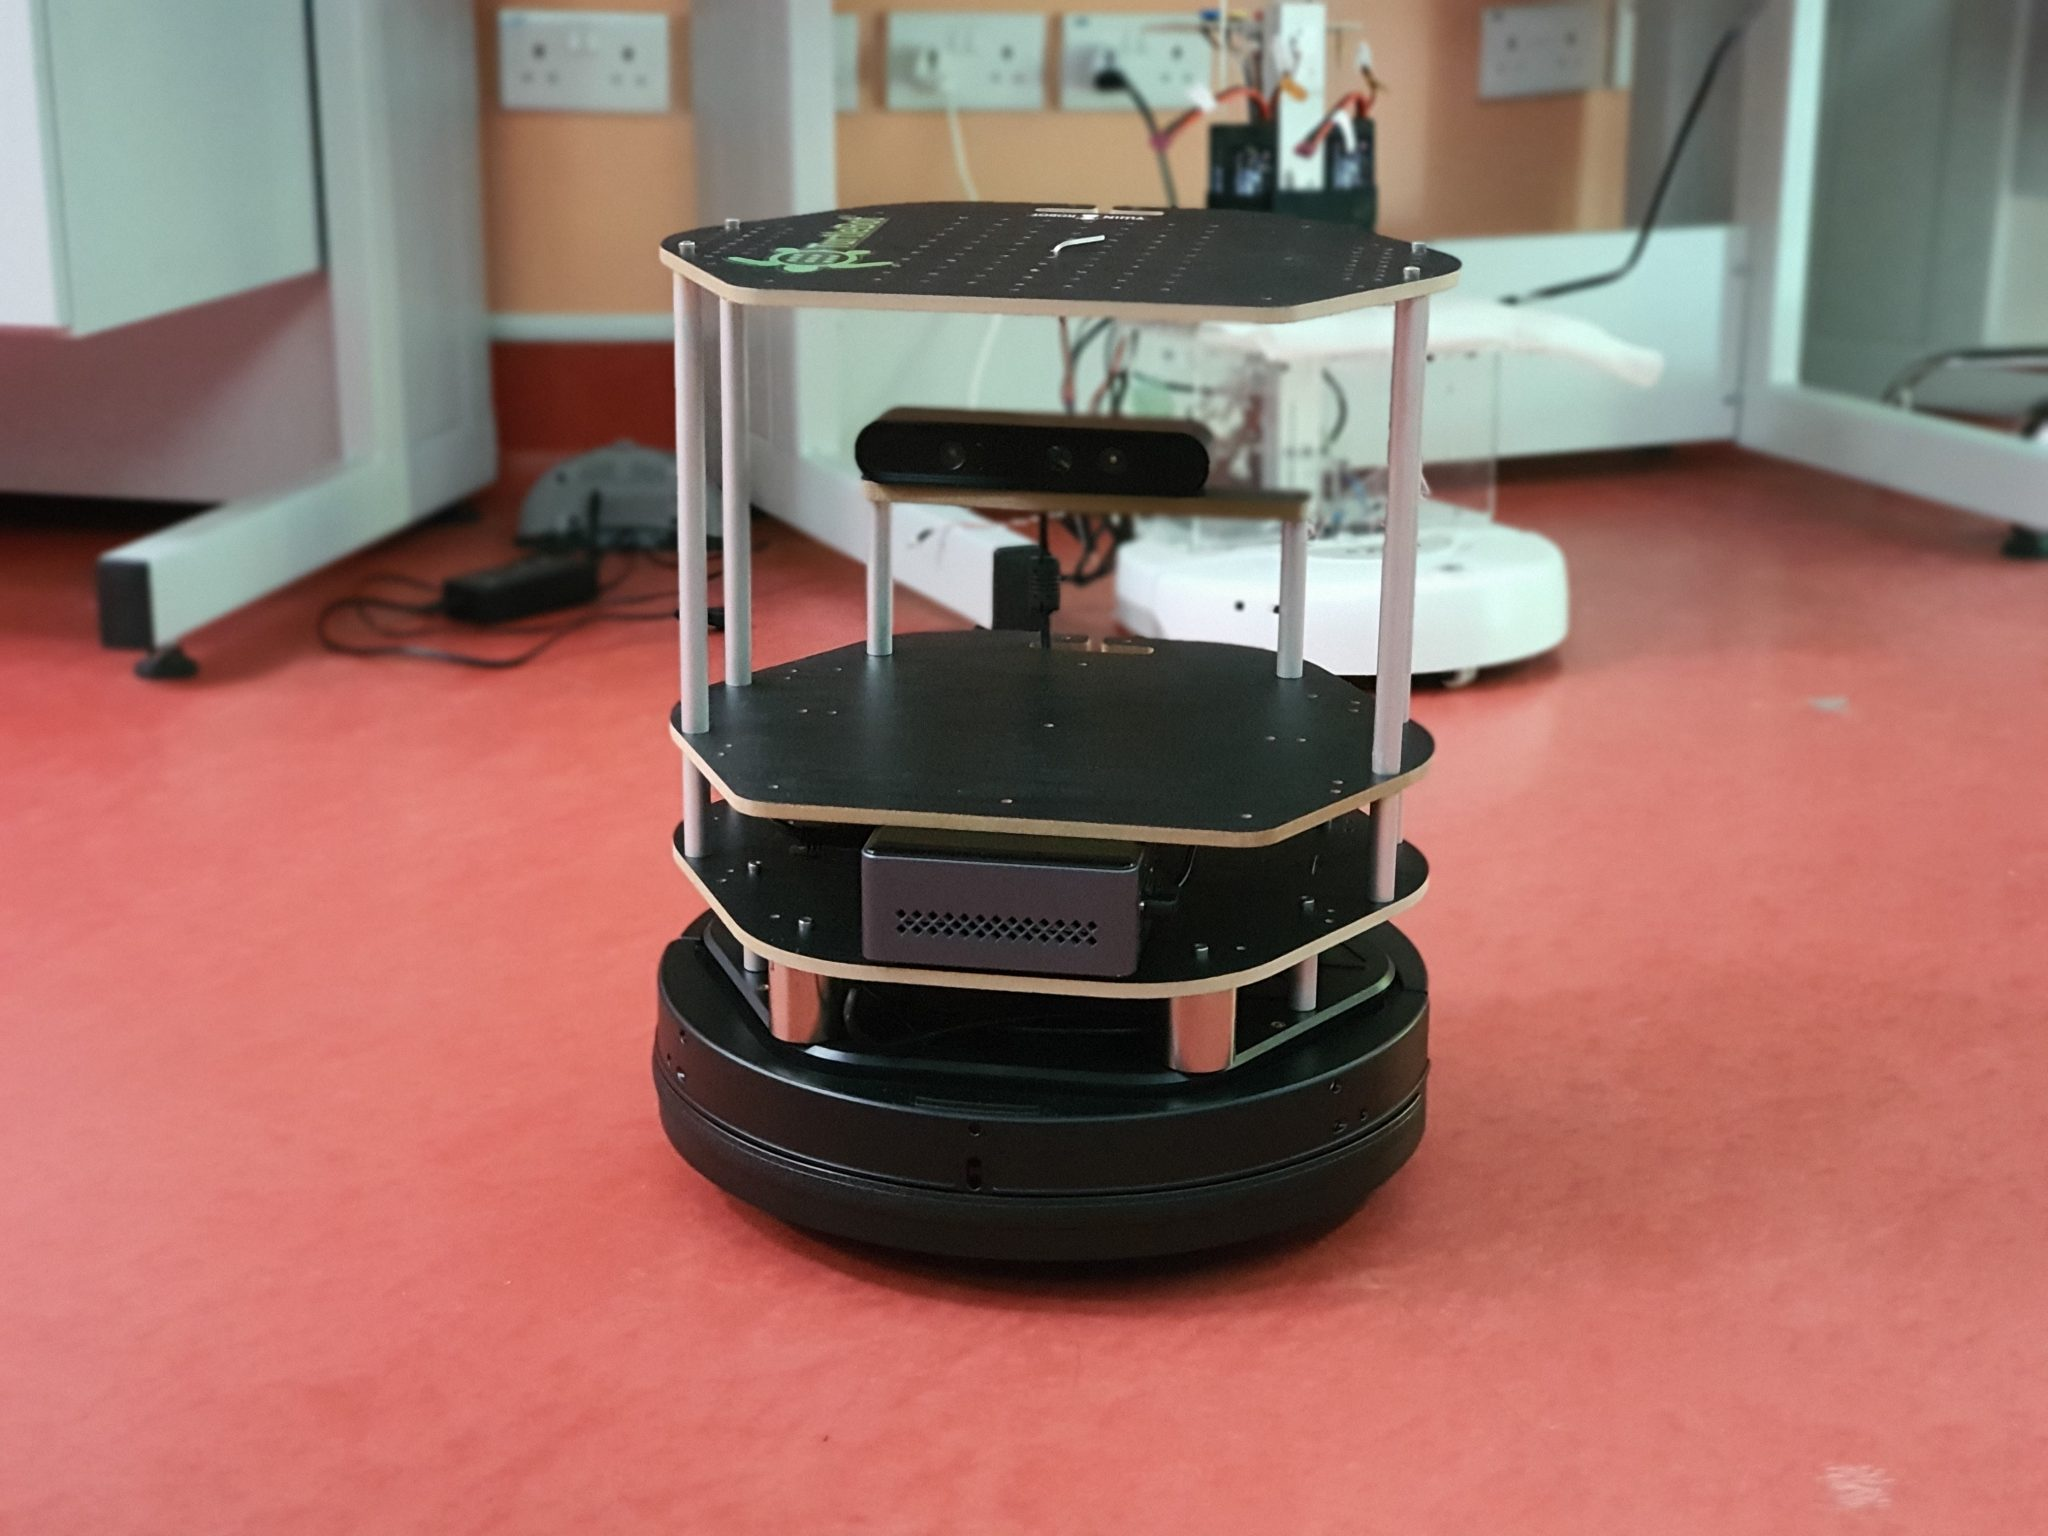 Another TurtleBot 2 added to Robolab